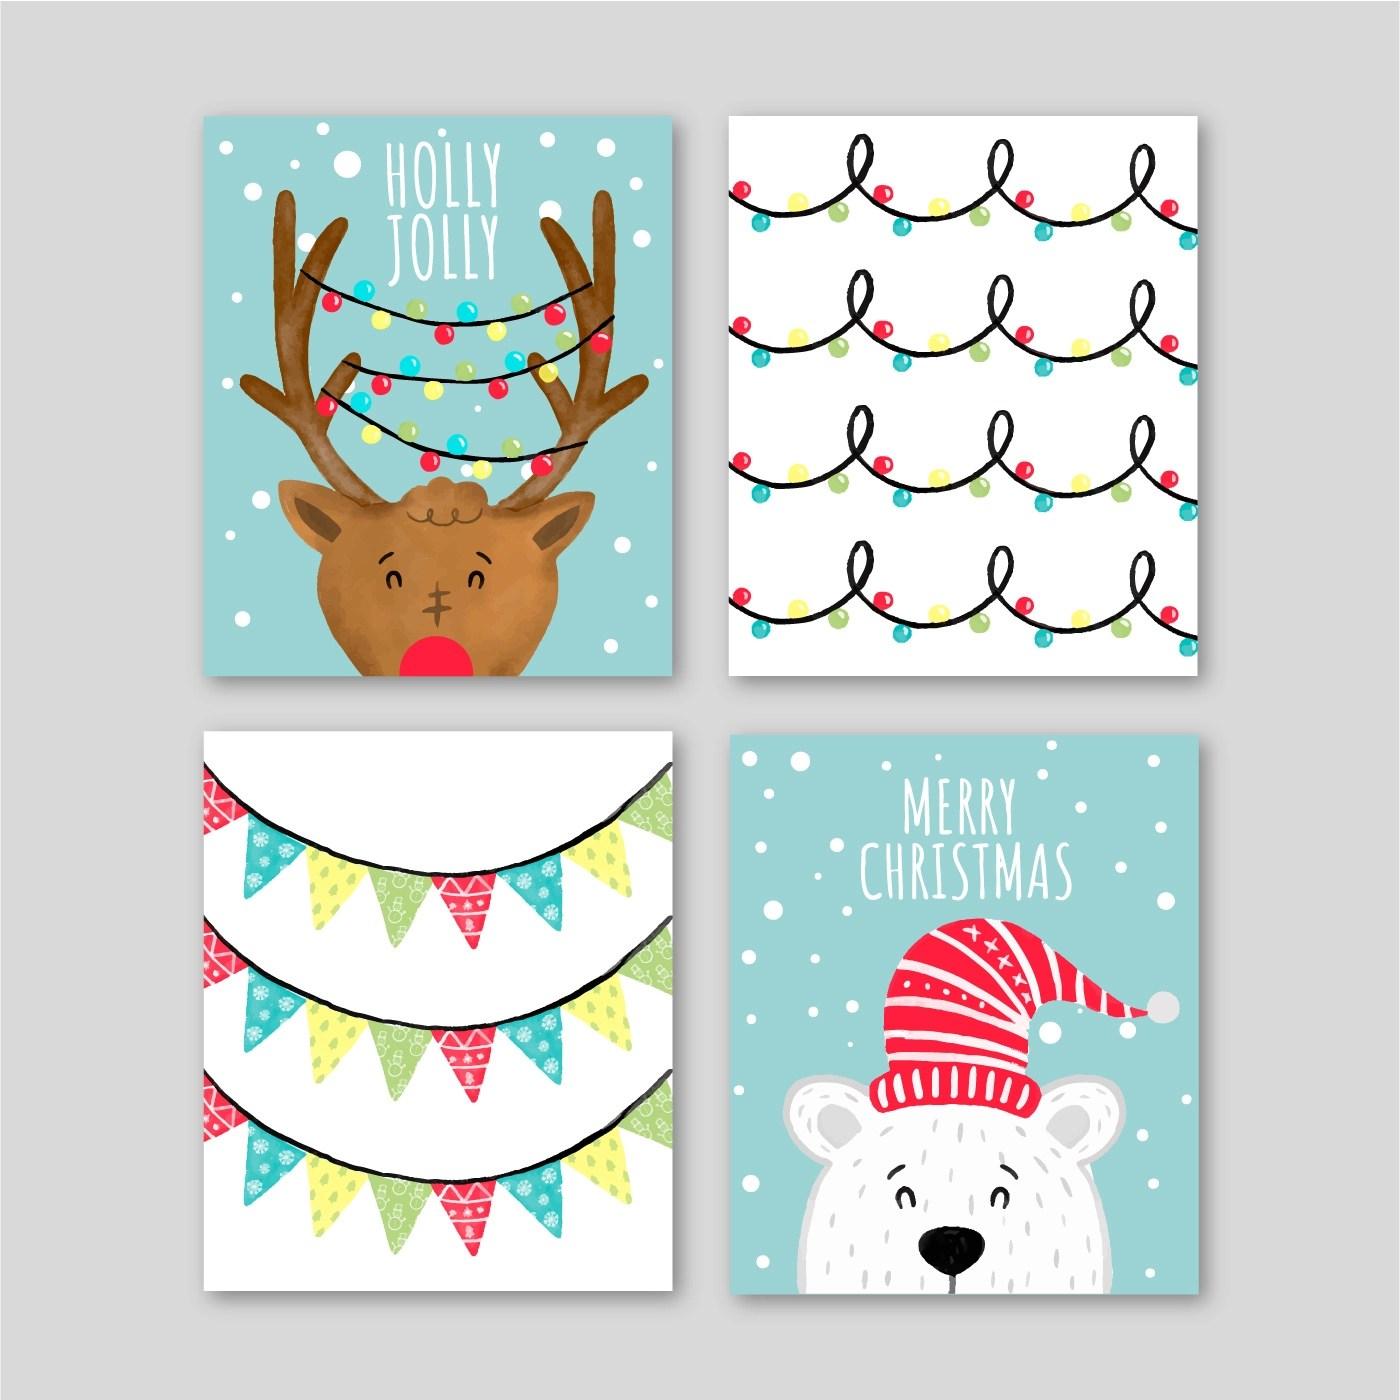 Cute Christmas Cards With Characters - Download Free ...